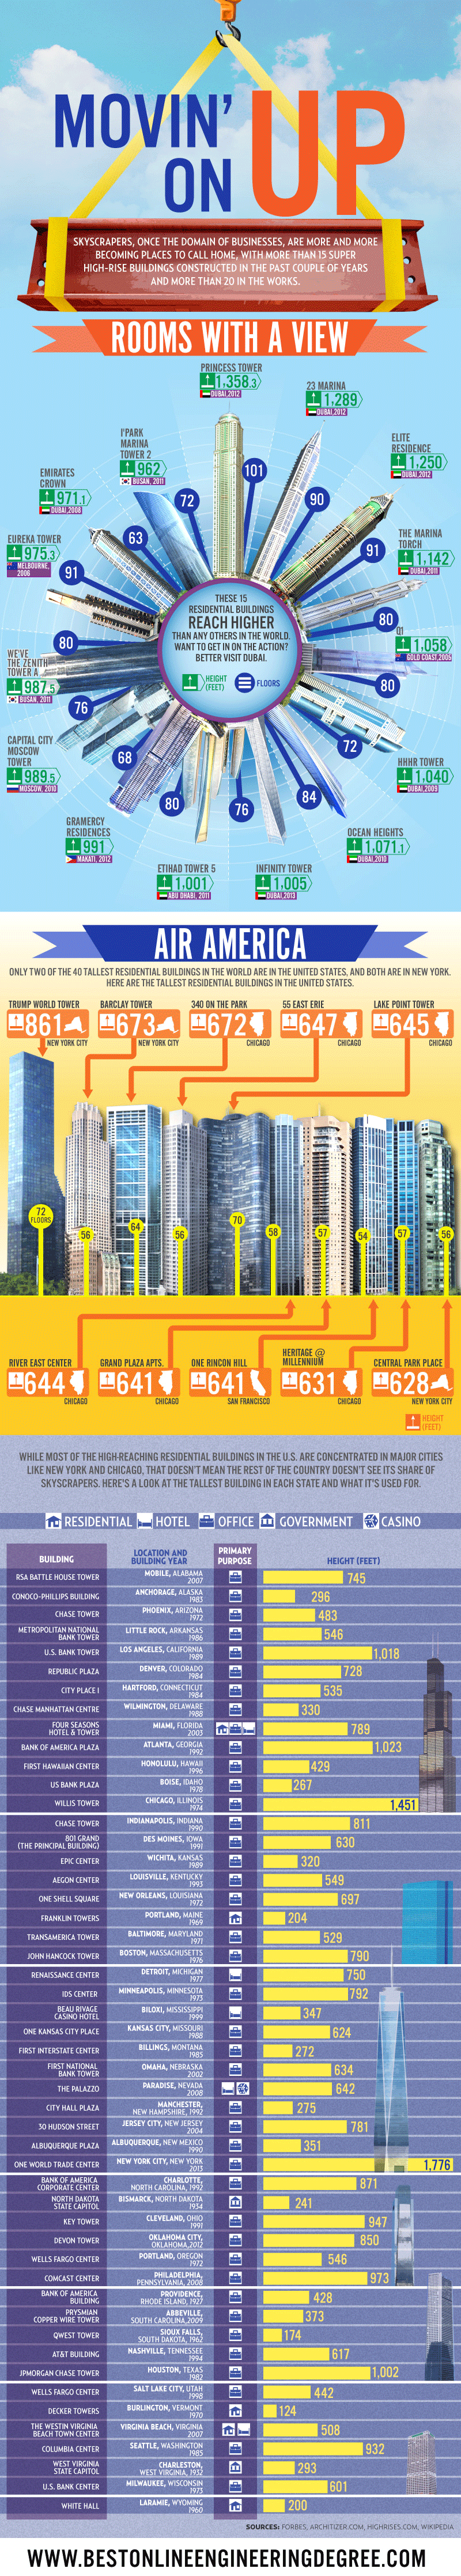 Movin' On Up: World's Tallest Buildings